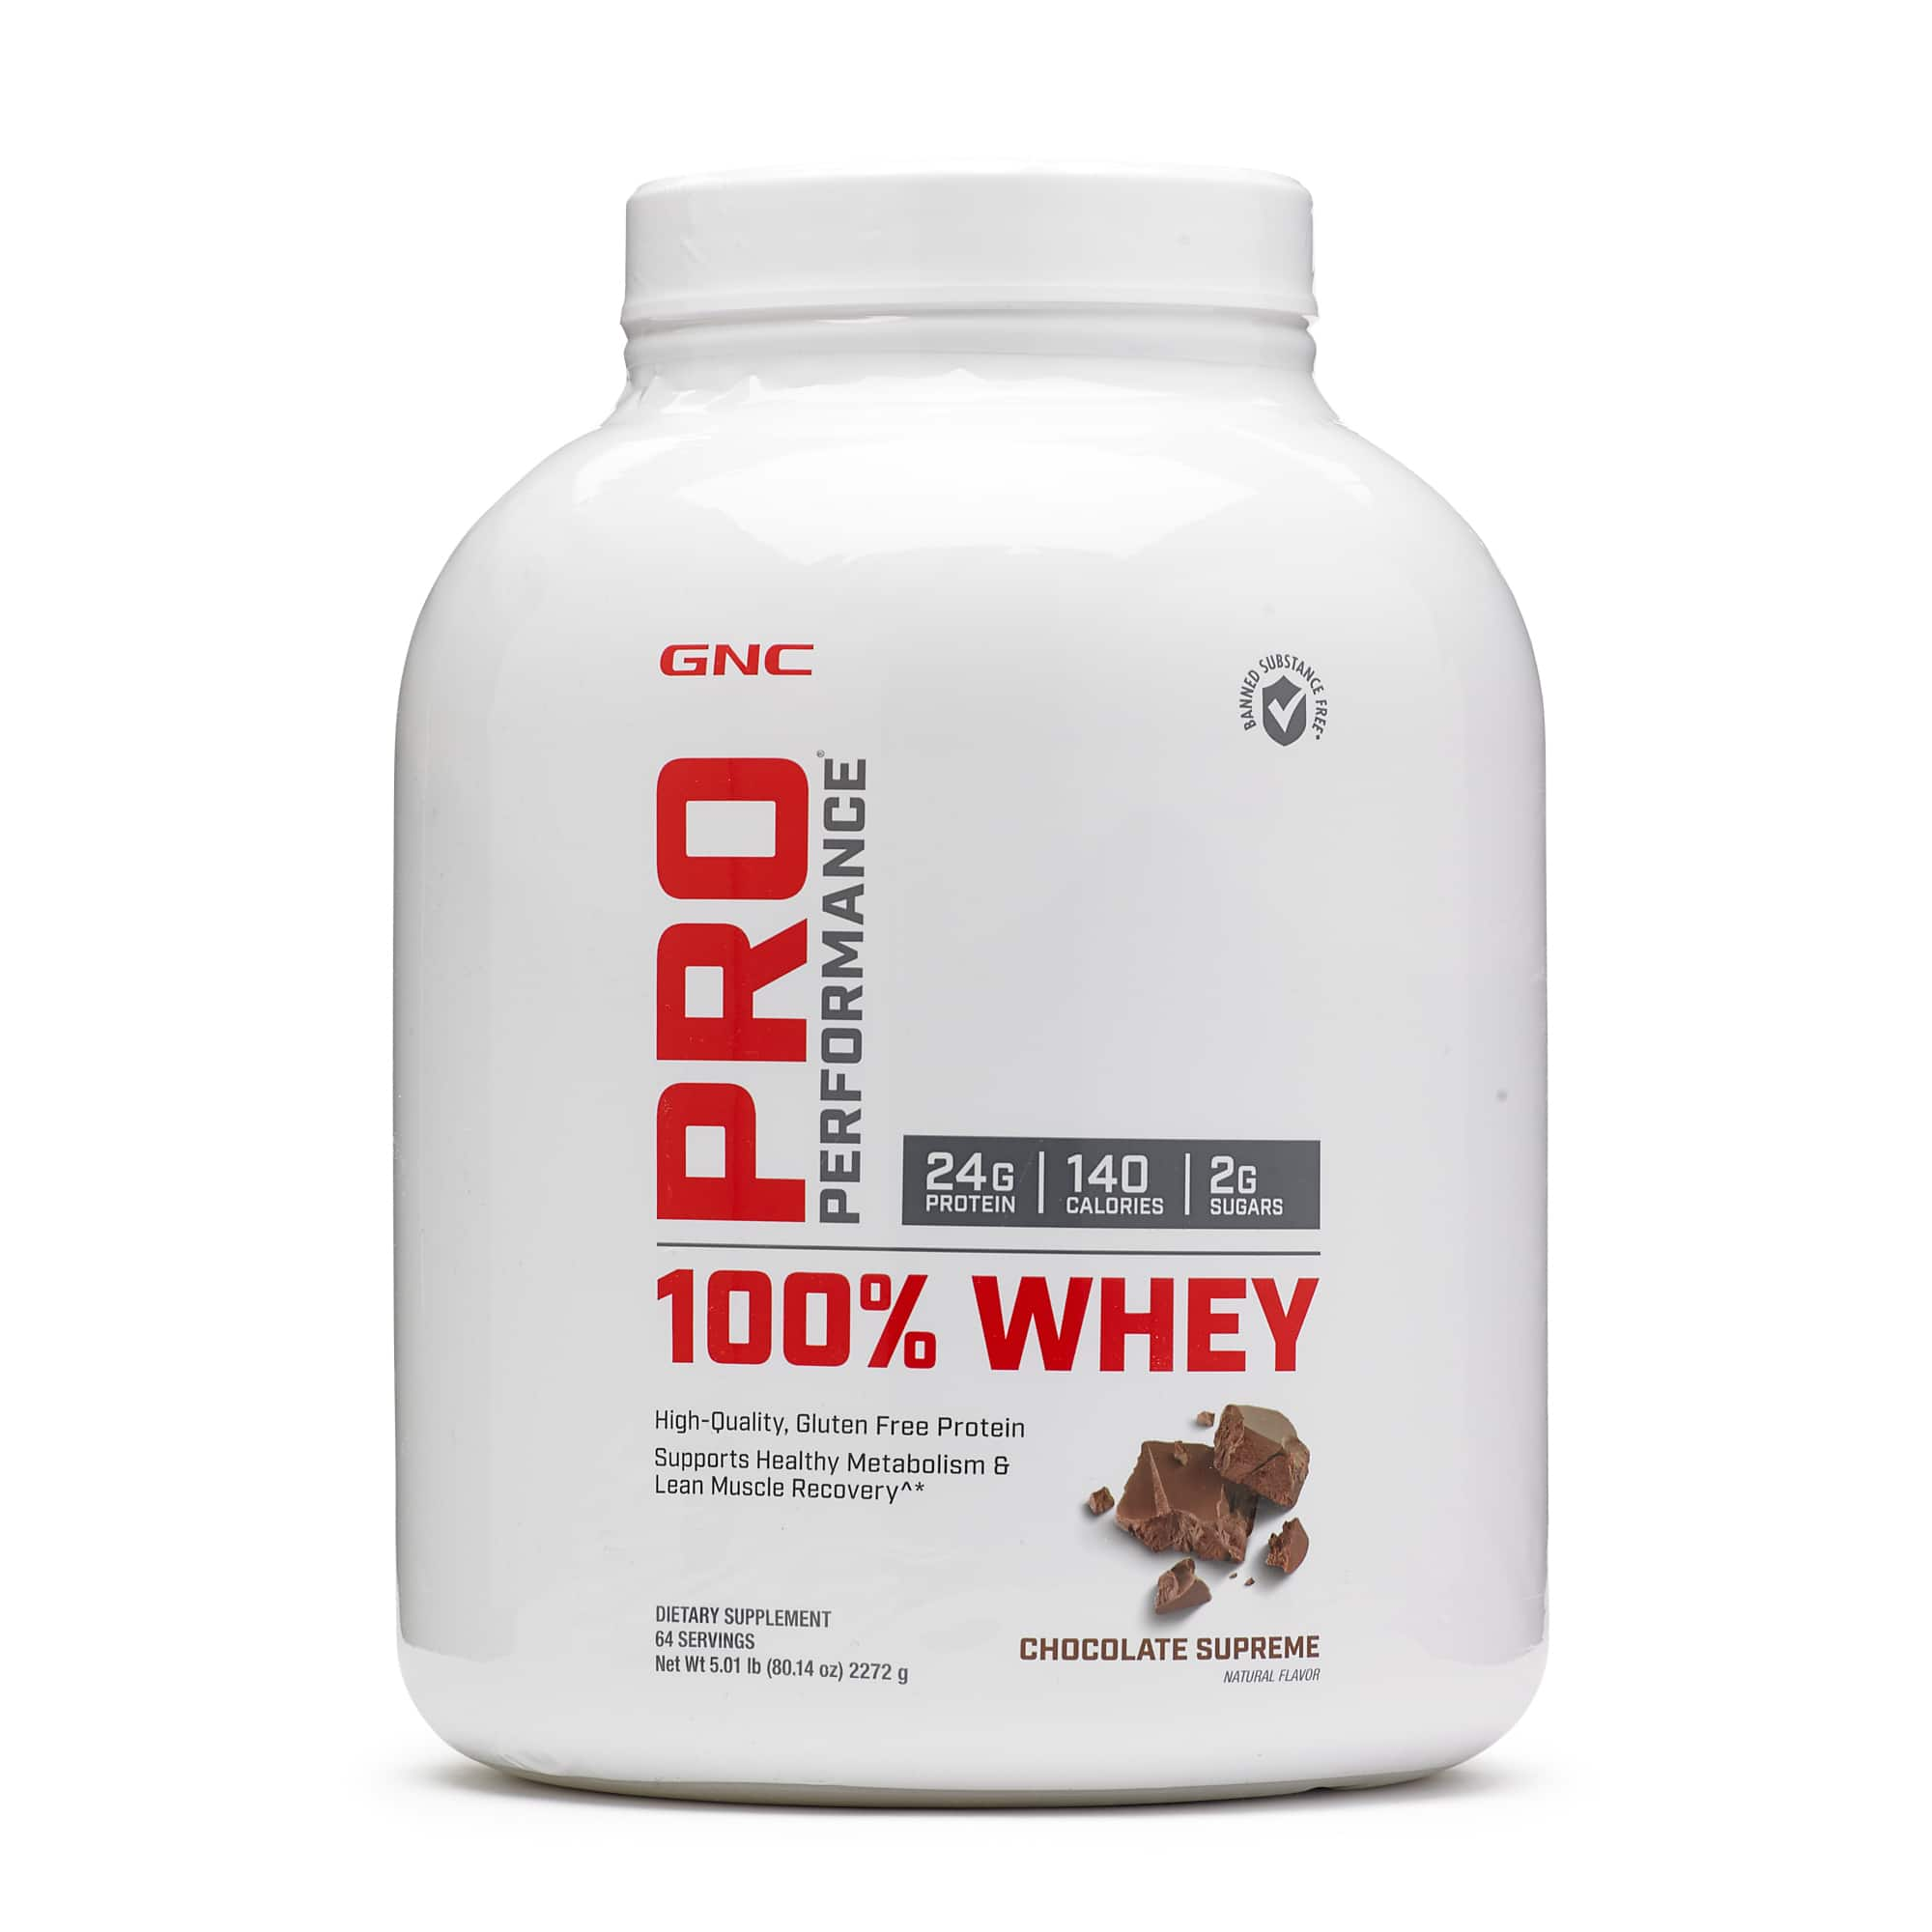 10-lbs GNC Pro Performance 100% Whey (Various Flavors) $63.73 + Free S&H